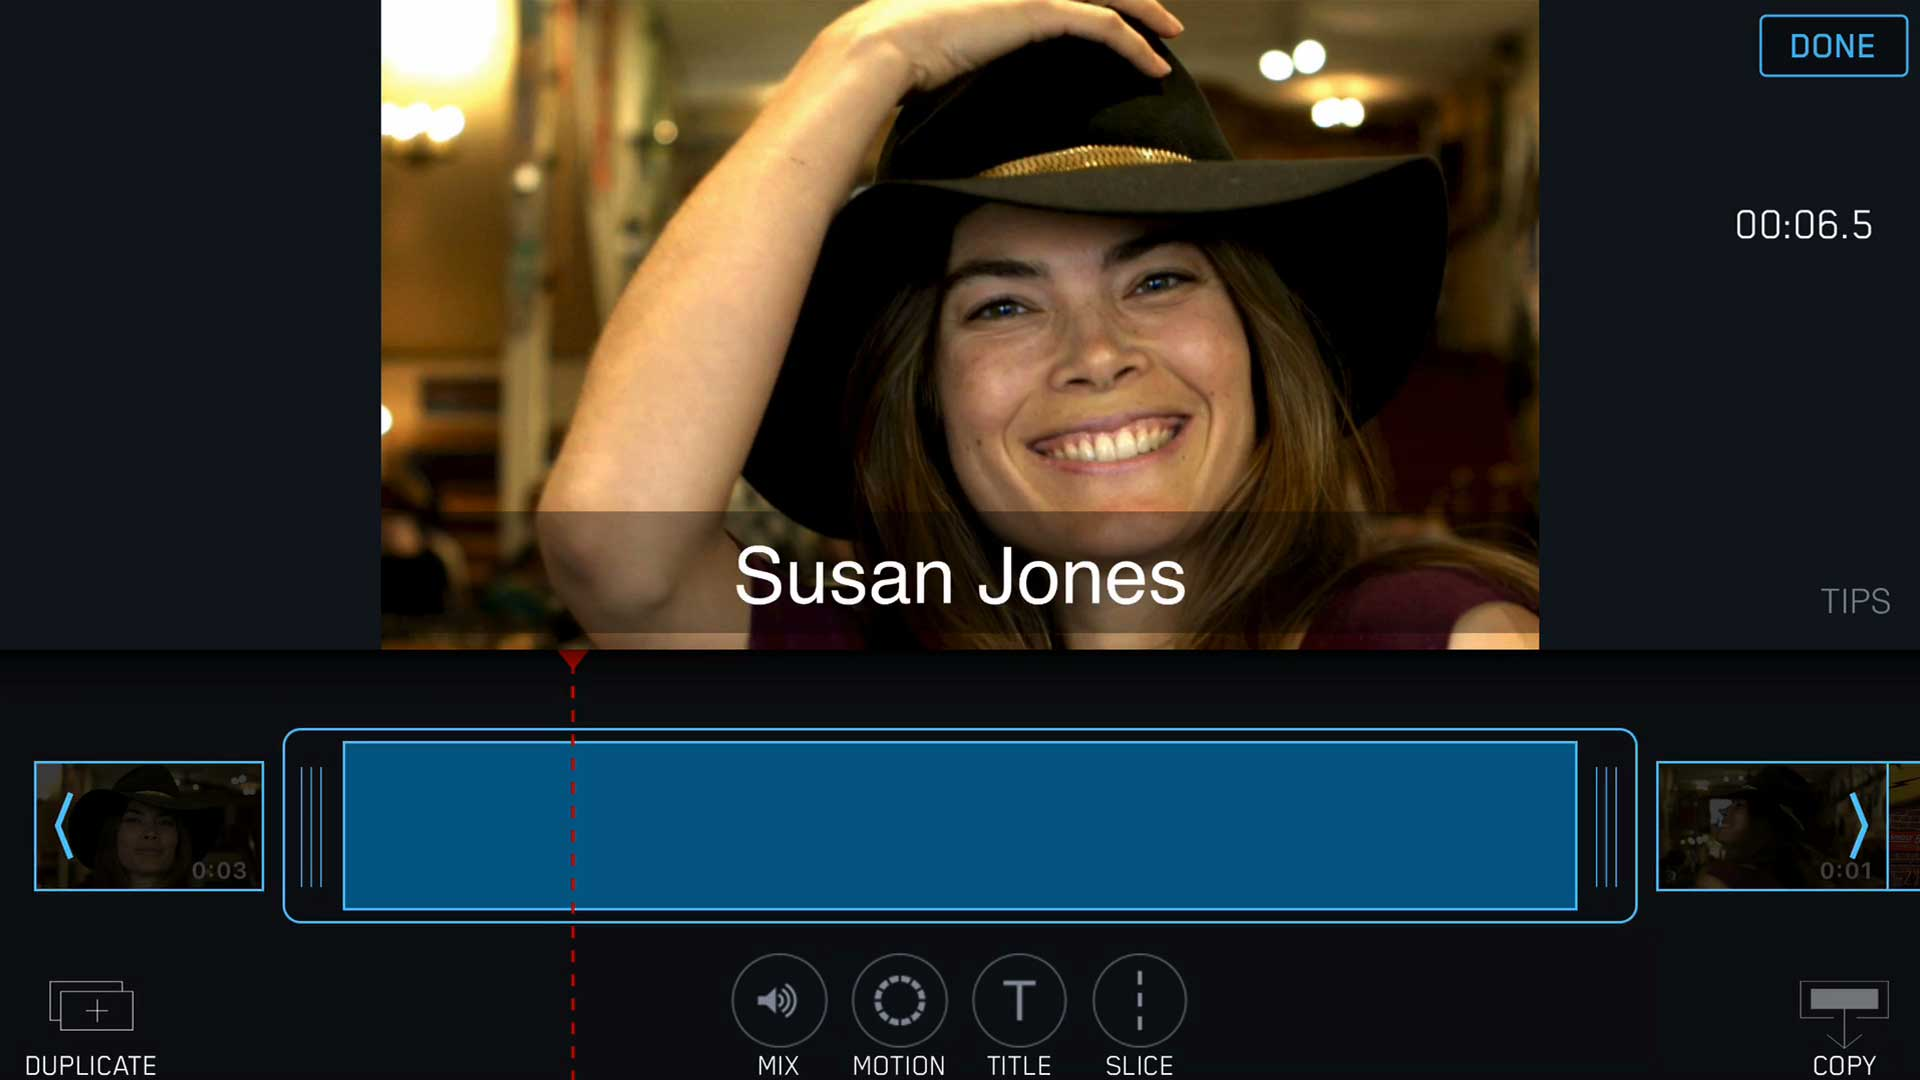 lower third title tool black bar filmakr editing app iphone video camera clips clipbar timeline filmstrip interface ui ux design audio mix motion effect slice pretty girl fashion hat graphics type animation image